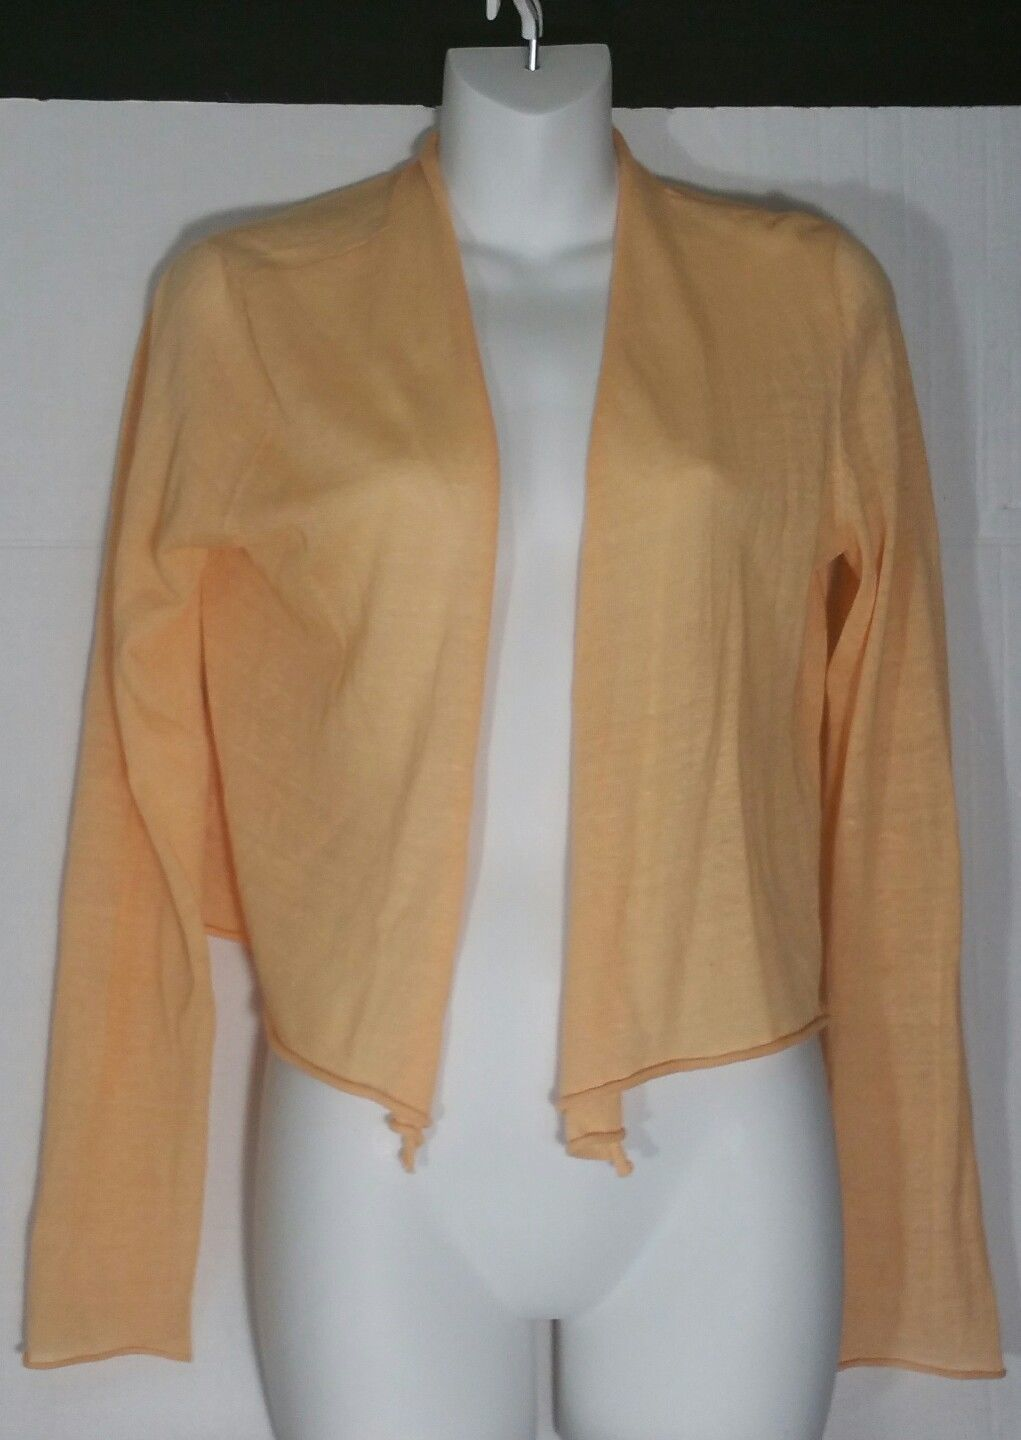 Eileen Fisher Cardigan Sweater S Small Simple Cropped Lightweight Apricot NWT - $98.99